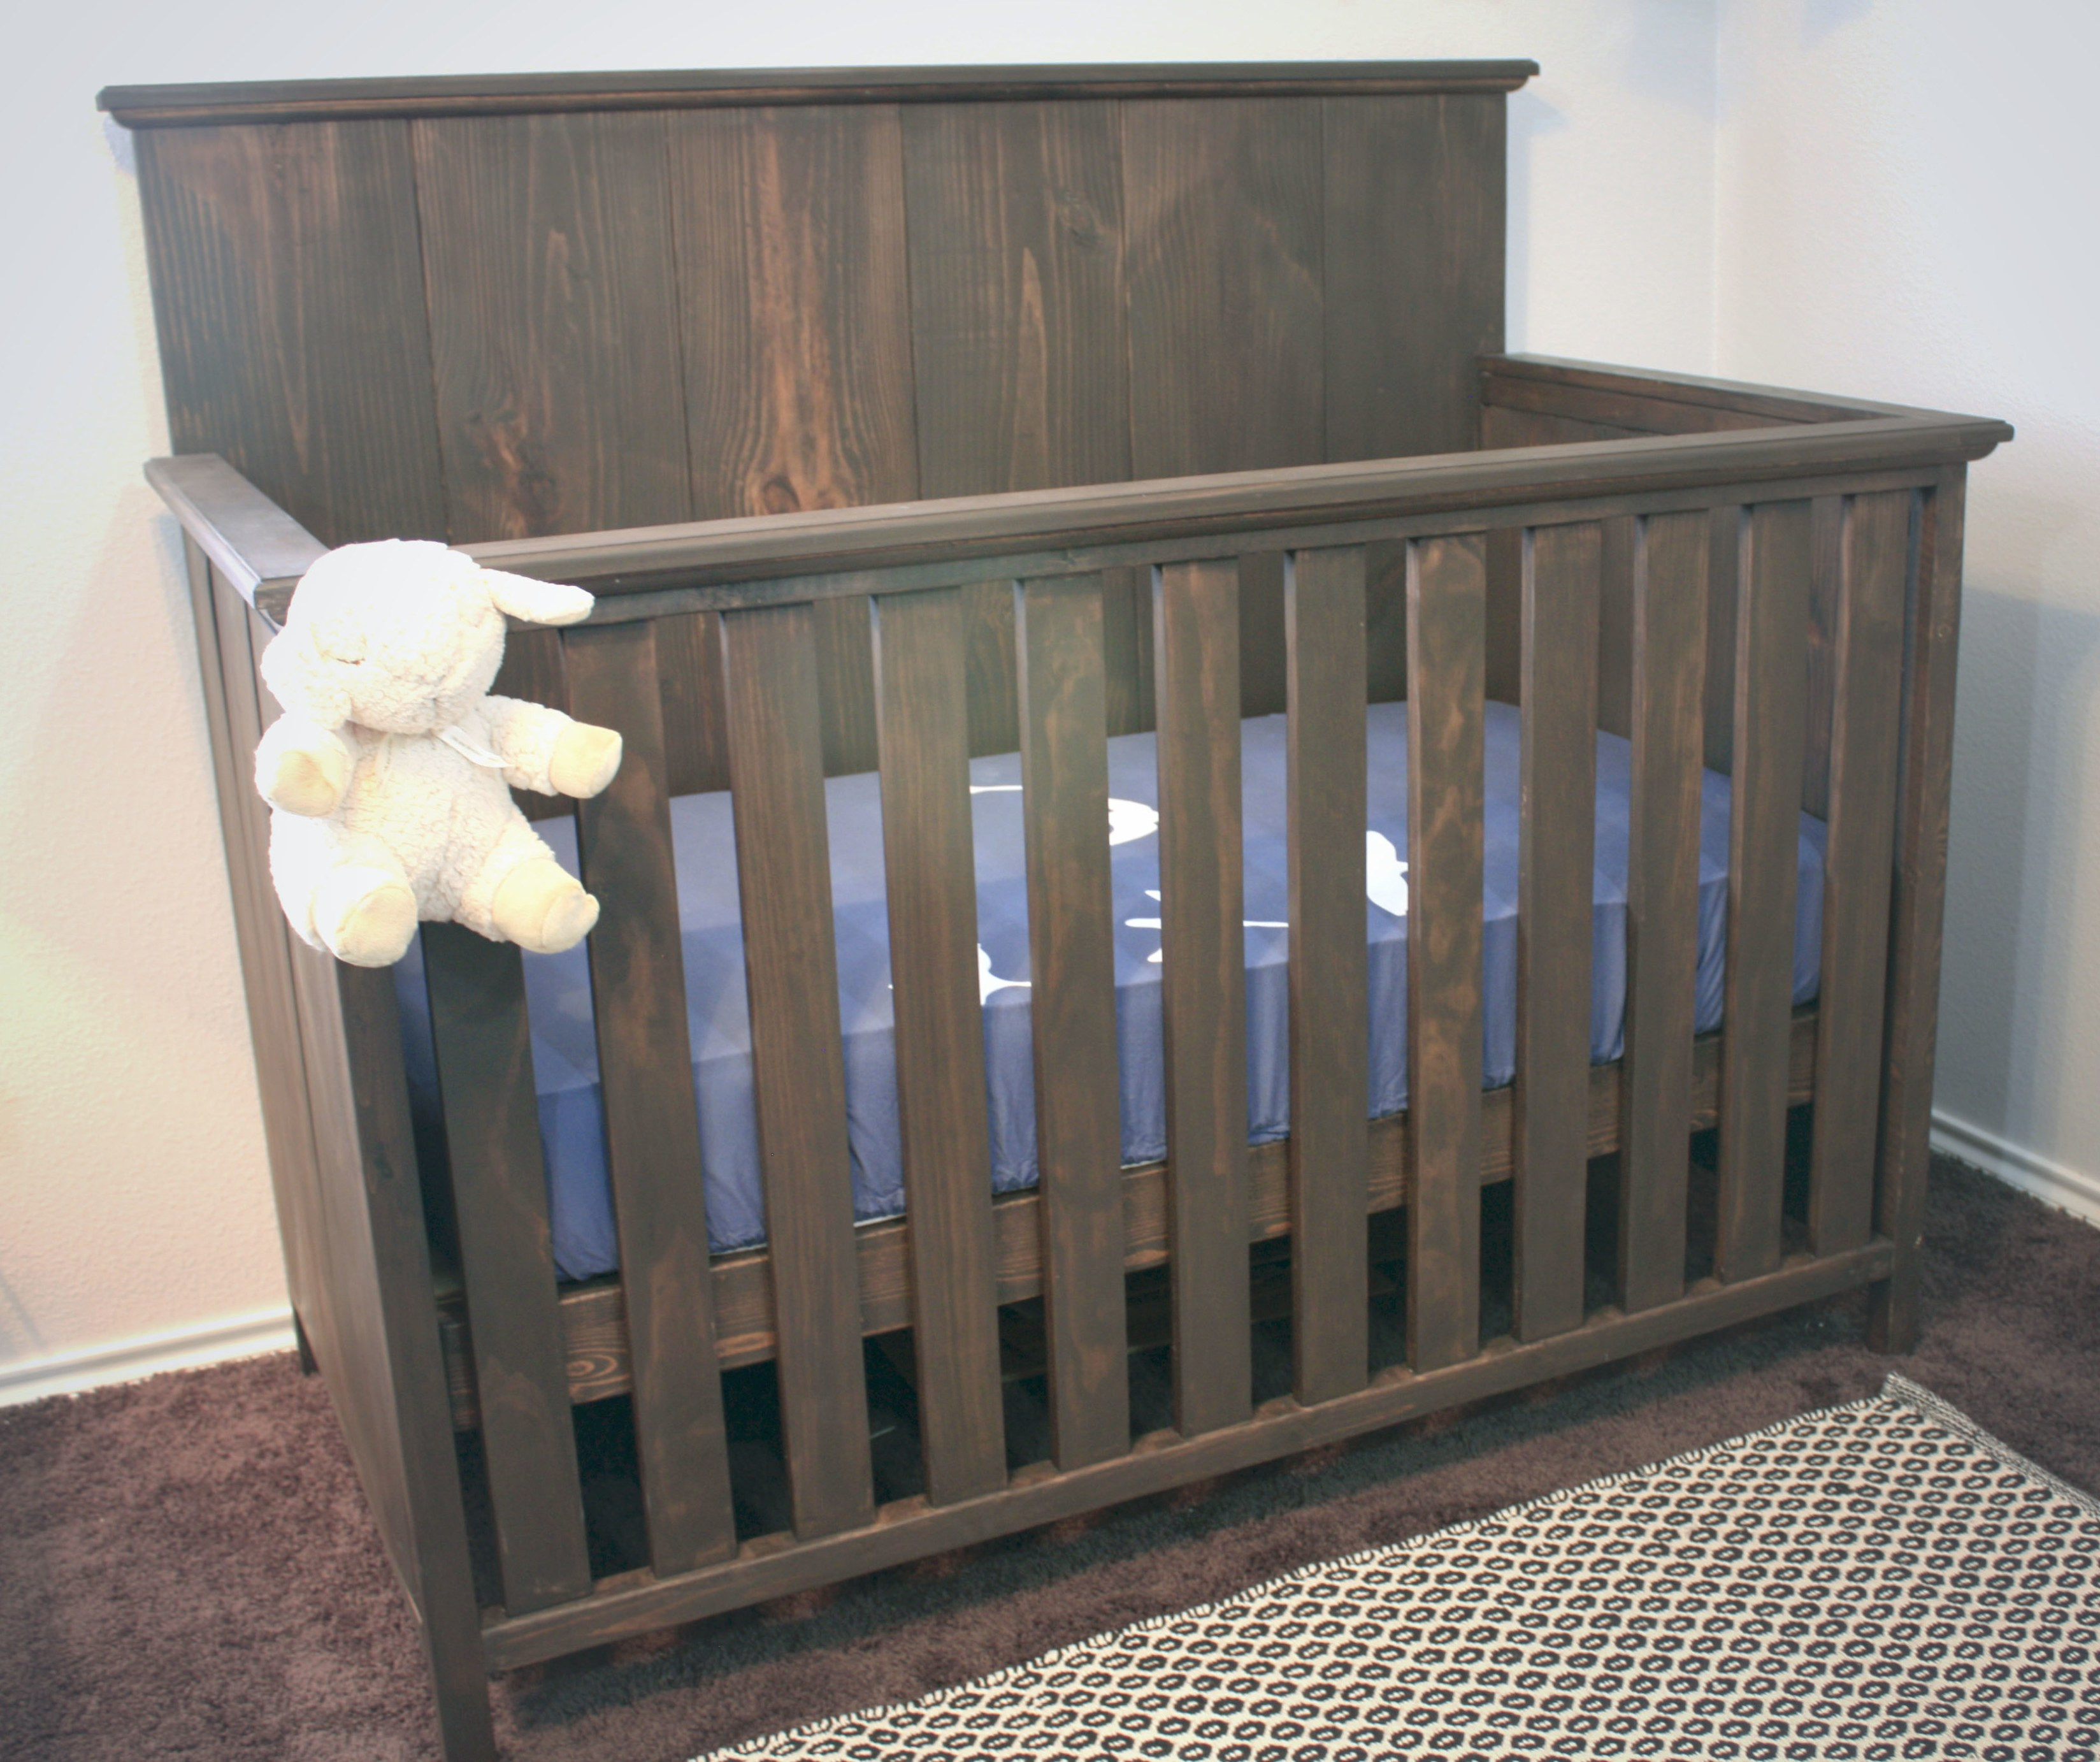 Best ideas about DIY Baby Bed . Save or Pin How To Build a Crib for $200 Now.